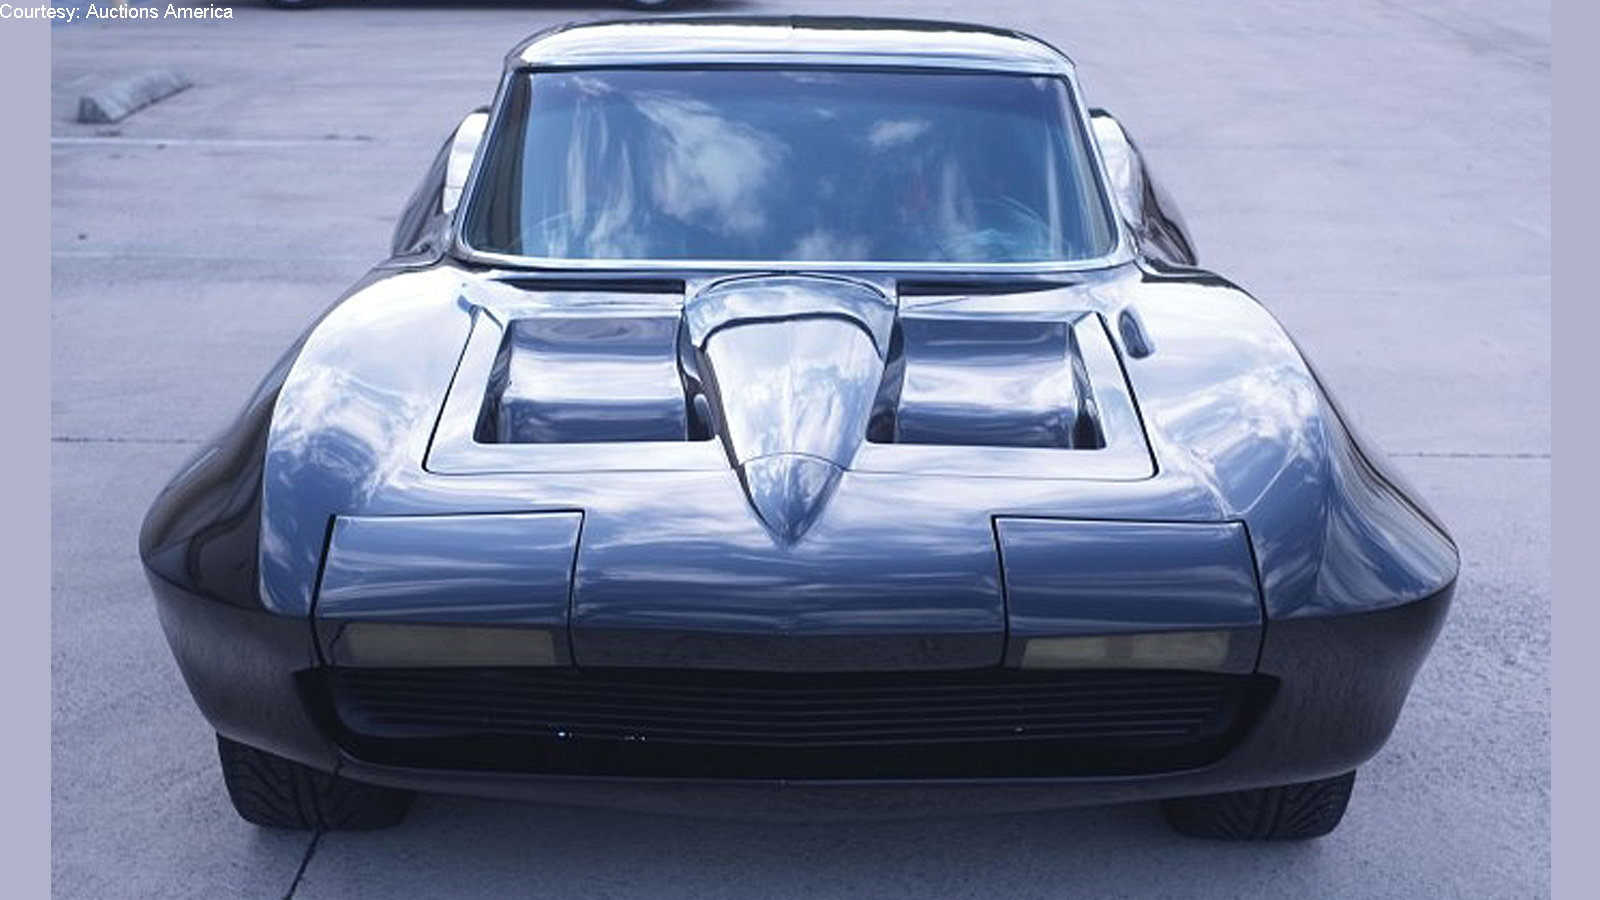 Very Unofficial Mid-engine Corvette Twin-turbo